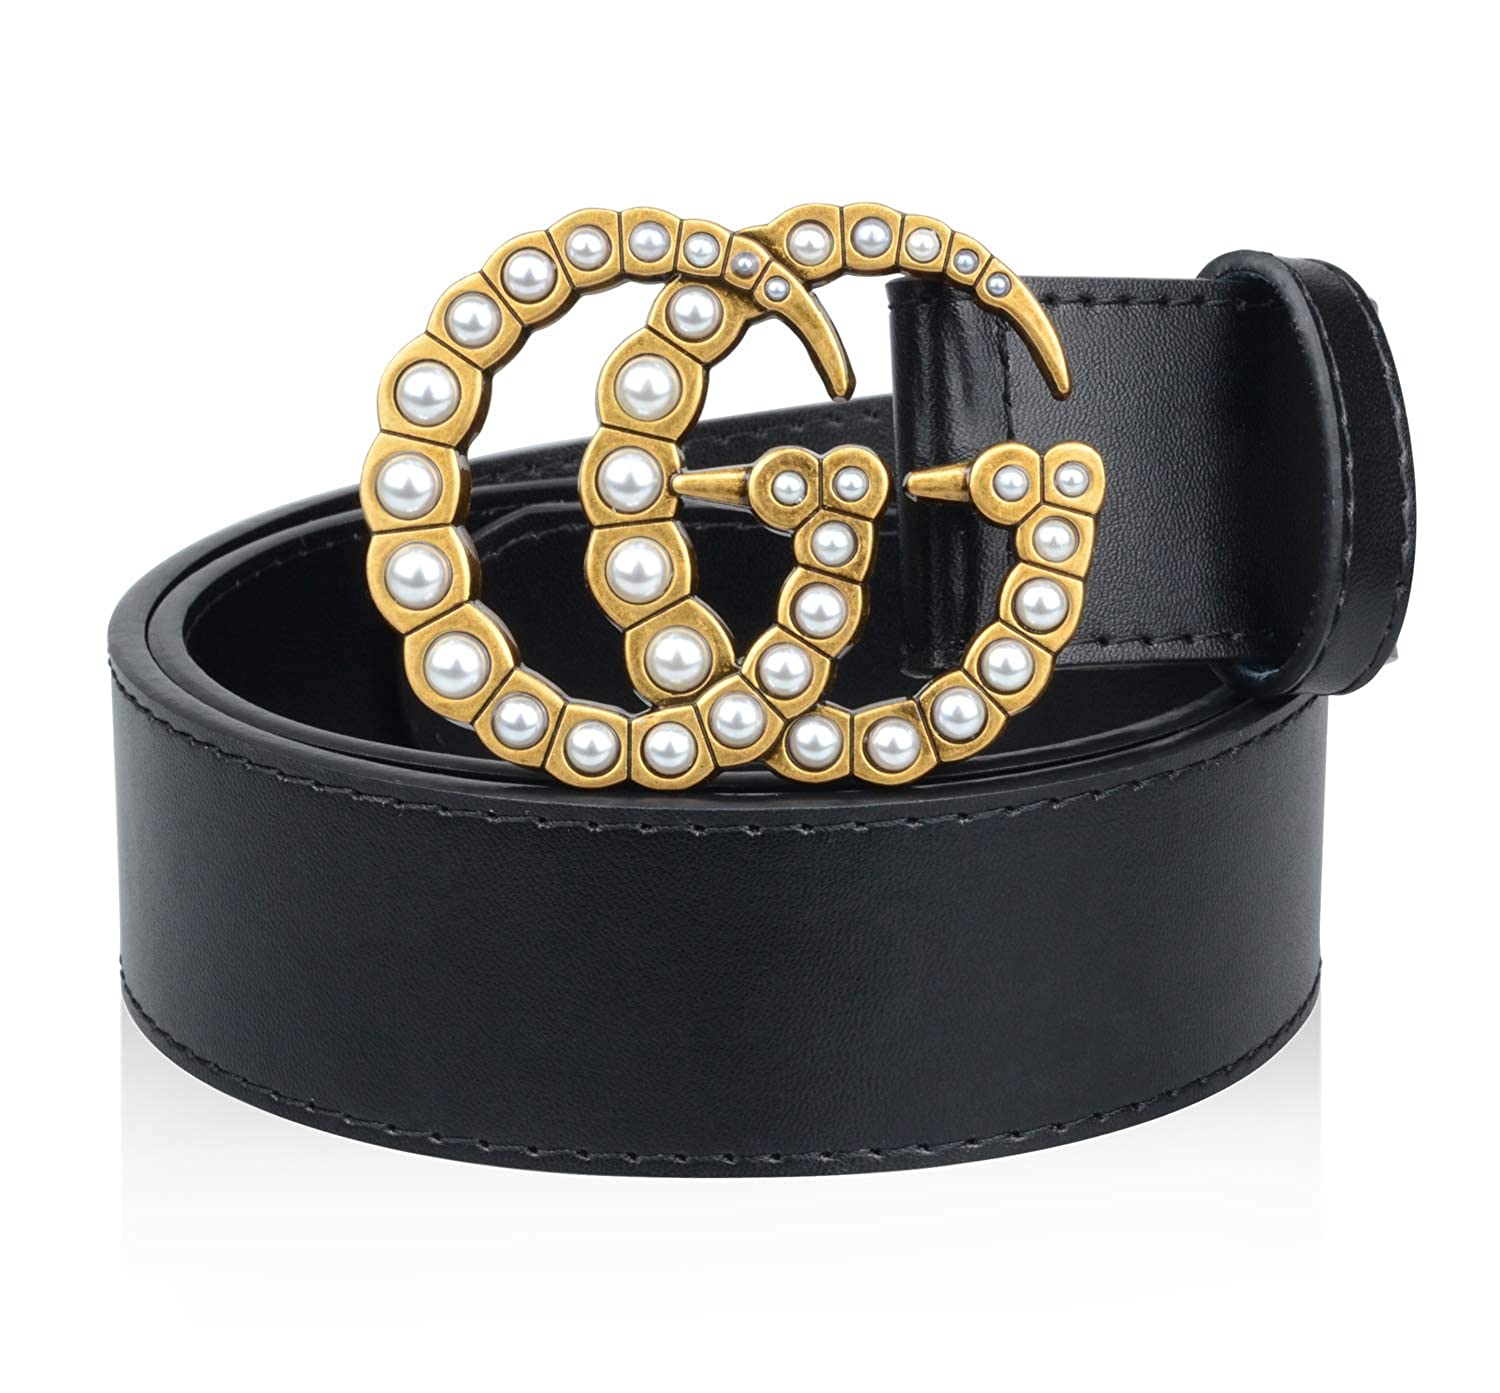 1cc52e23e GG Replica Belt for Women Gold Buckle Black Leathe Fake Replicas Mens Belts  at Amazon Women's Clothing store: